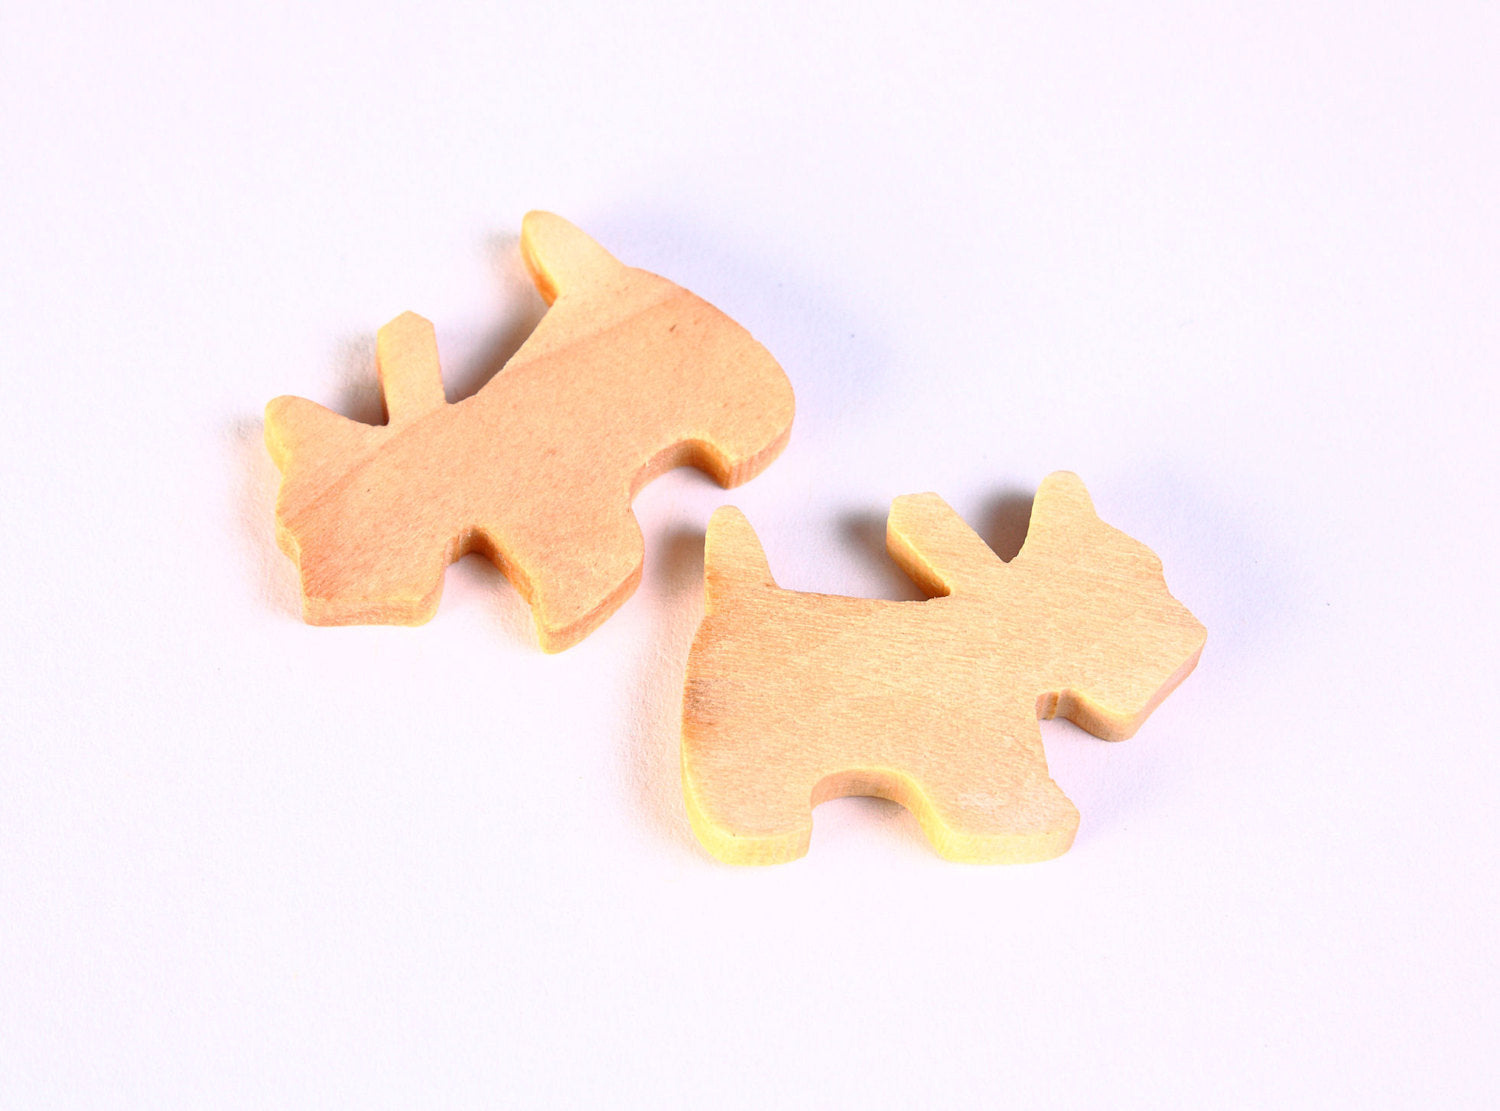 Dog cabochon - Dog woden cabochon - Wood cabochon - 26mm x 20mm - 6 pieces (1354)